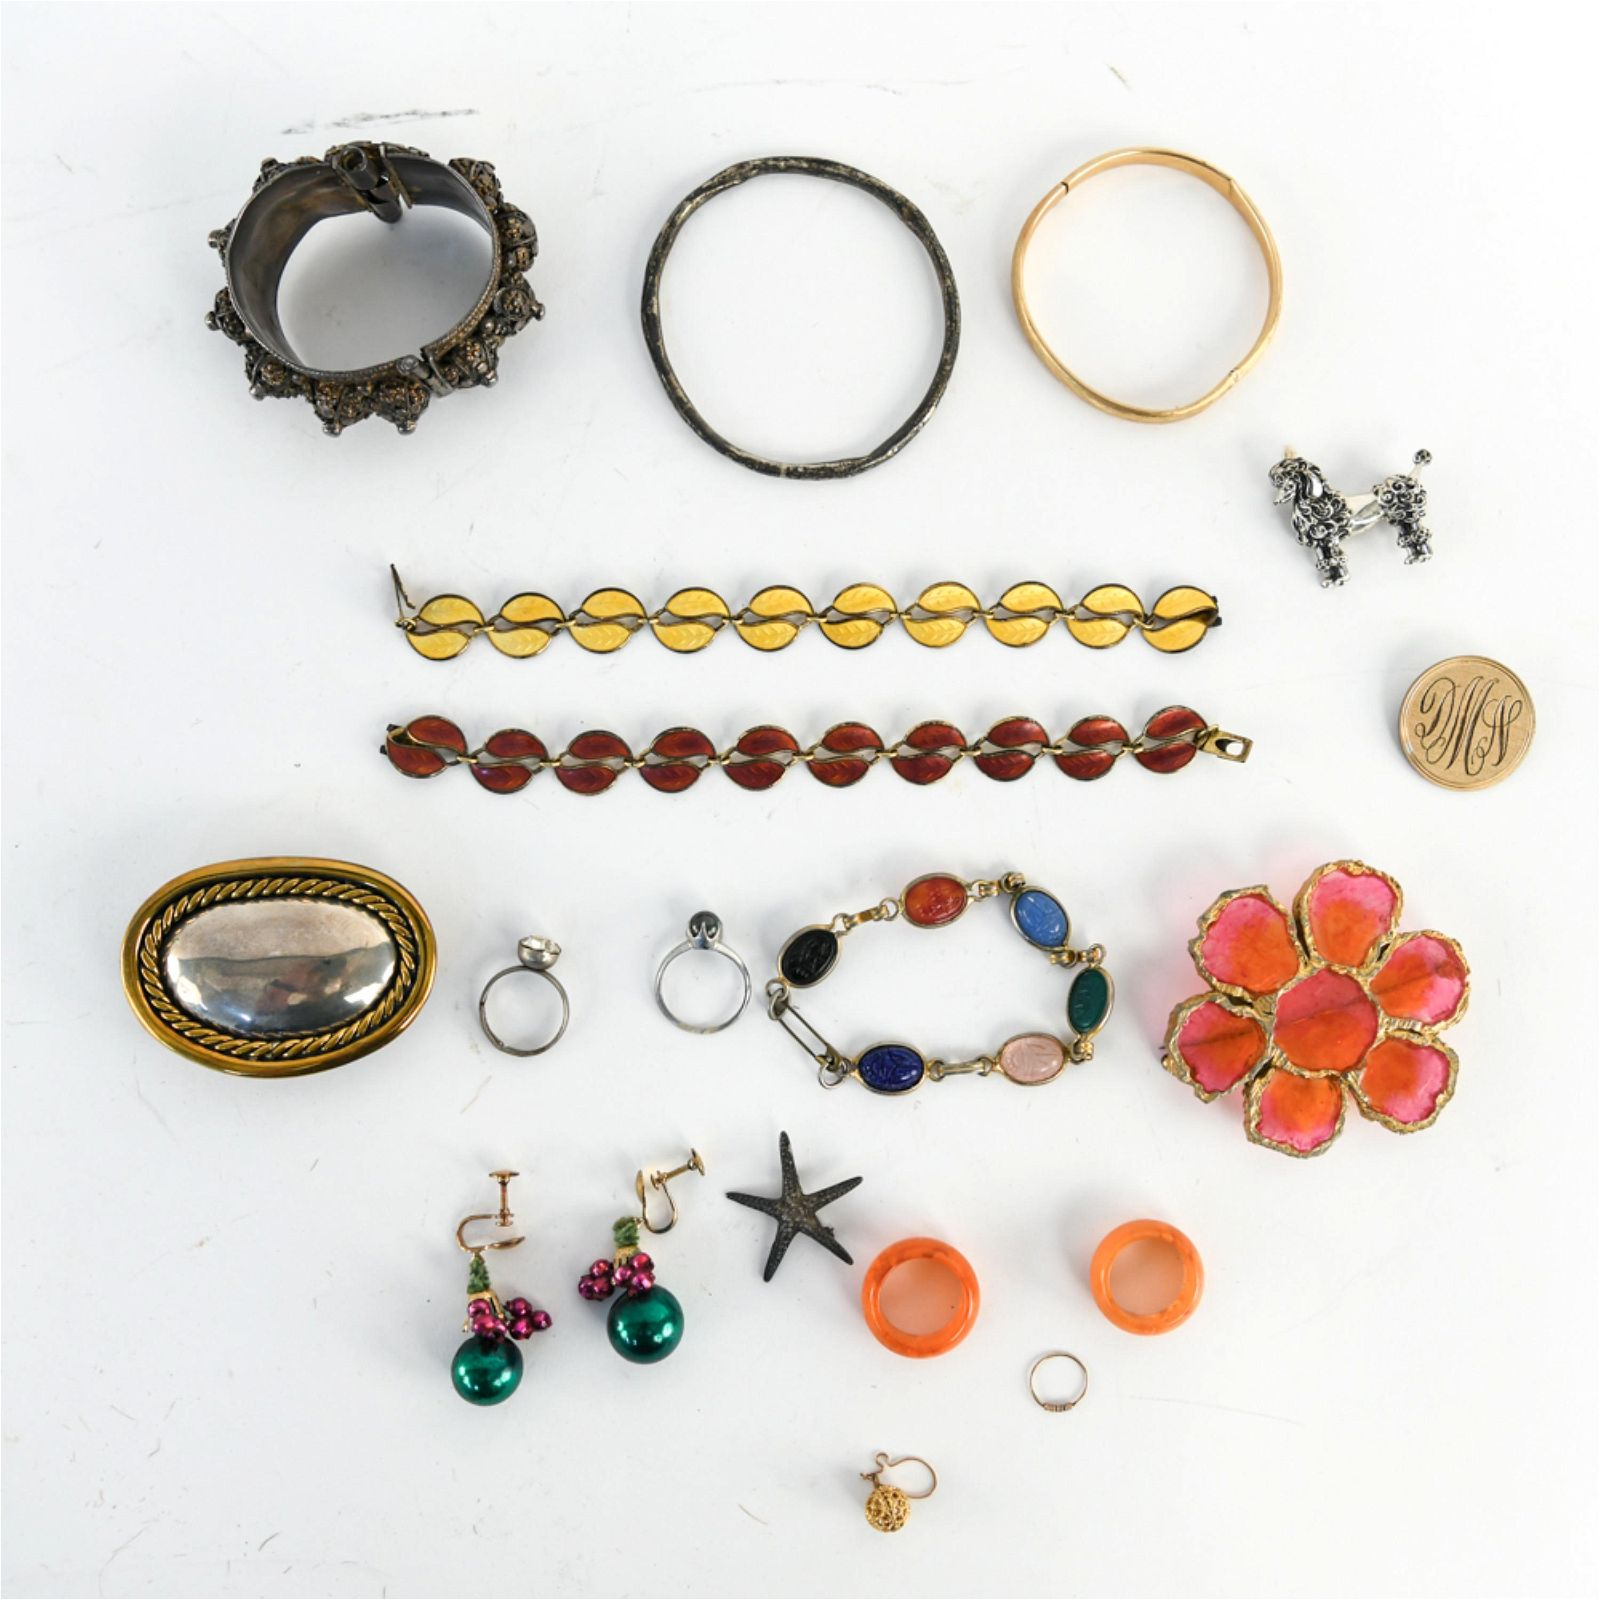 GROUPING OF JEWELRY INCL. STERLING & GOLD